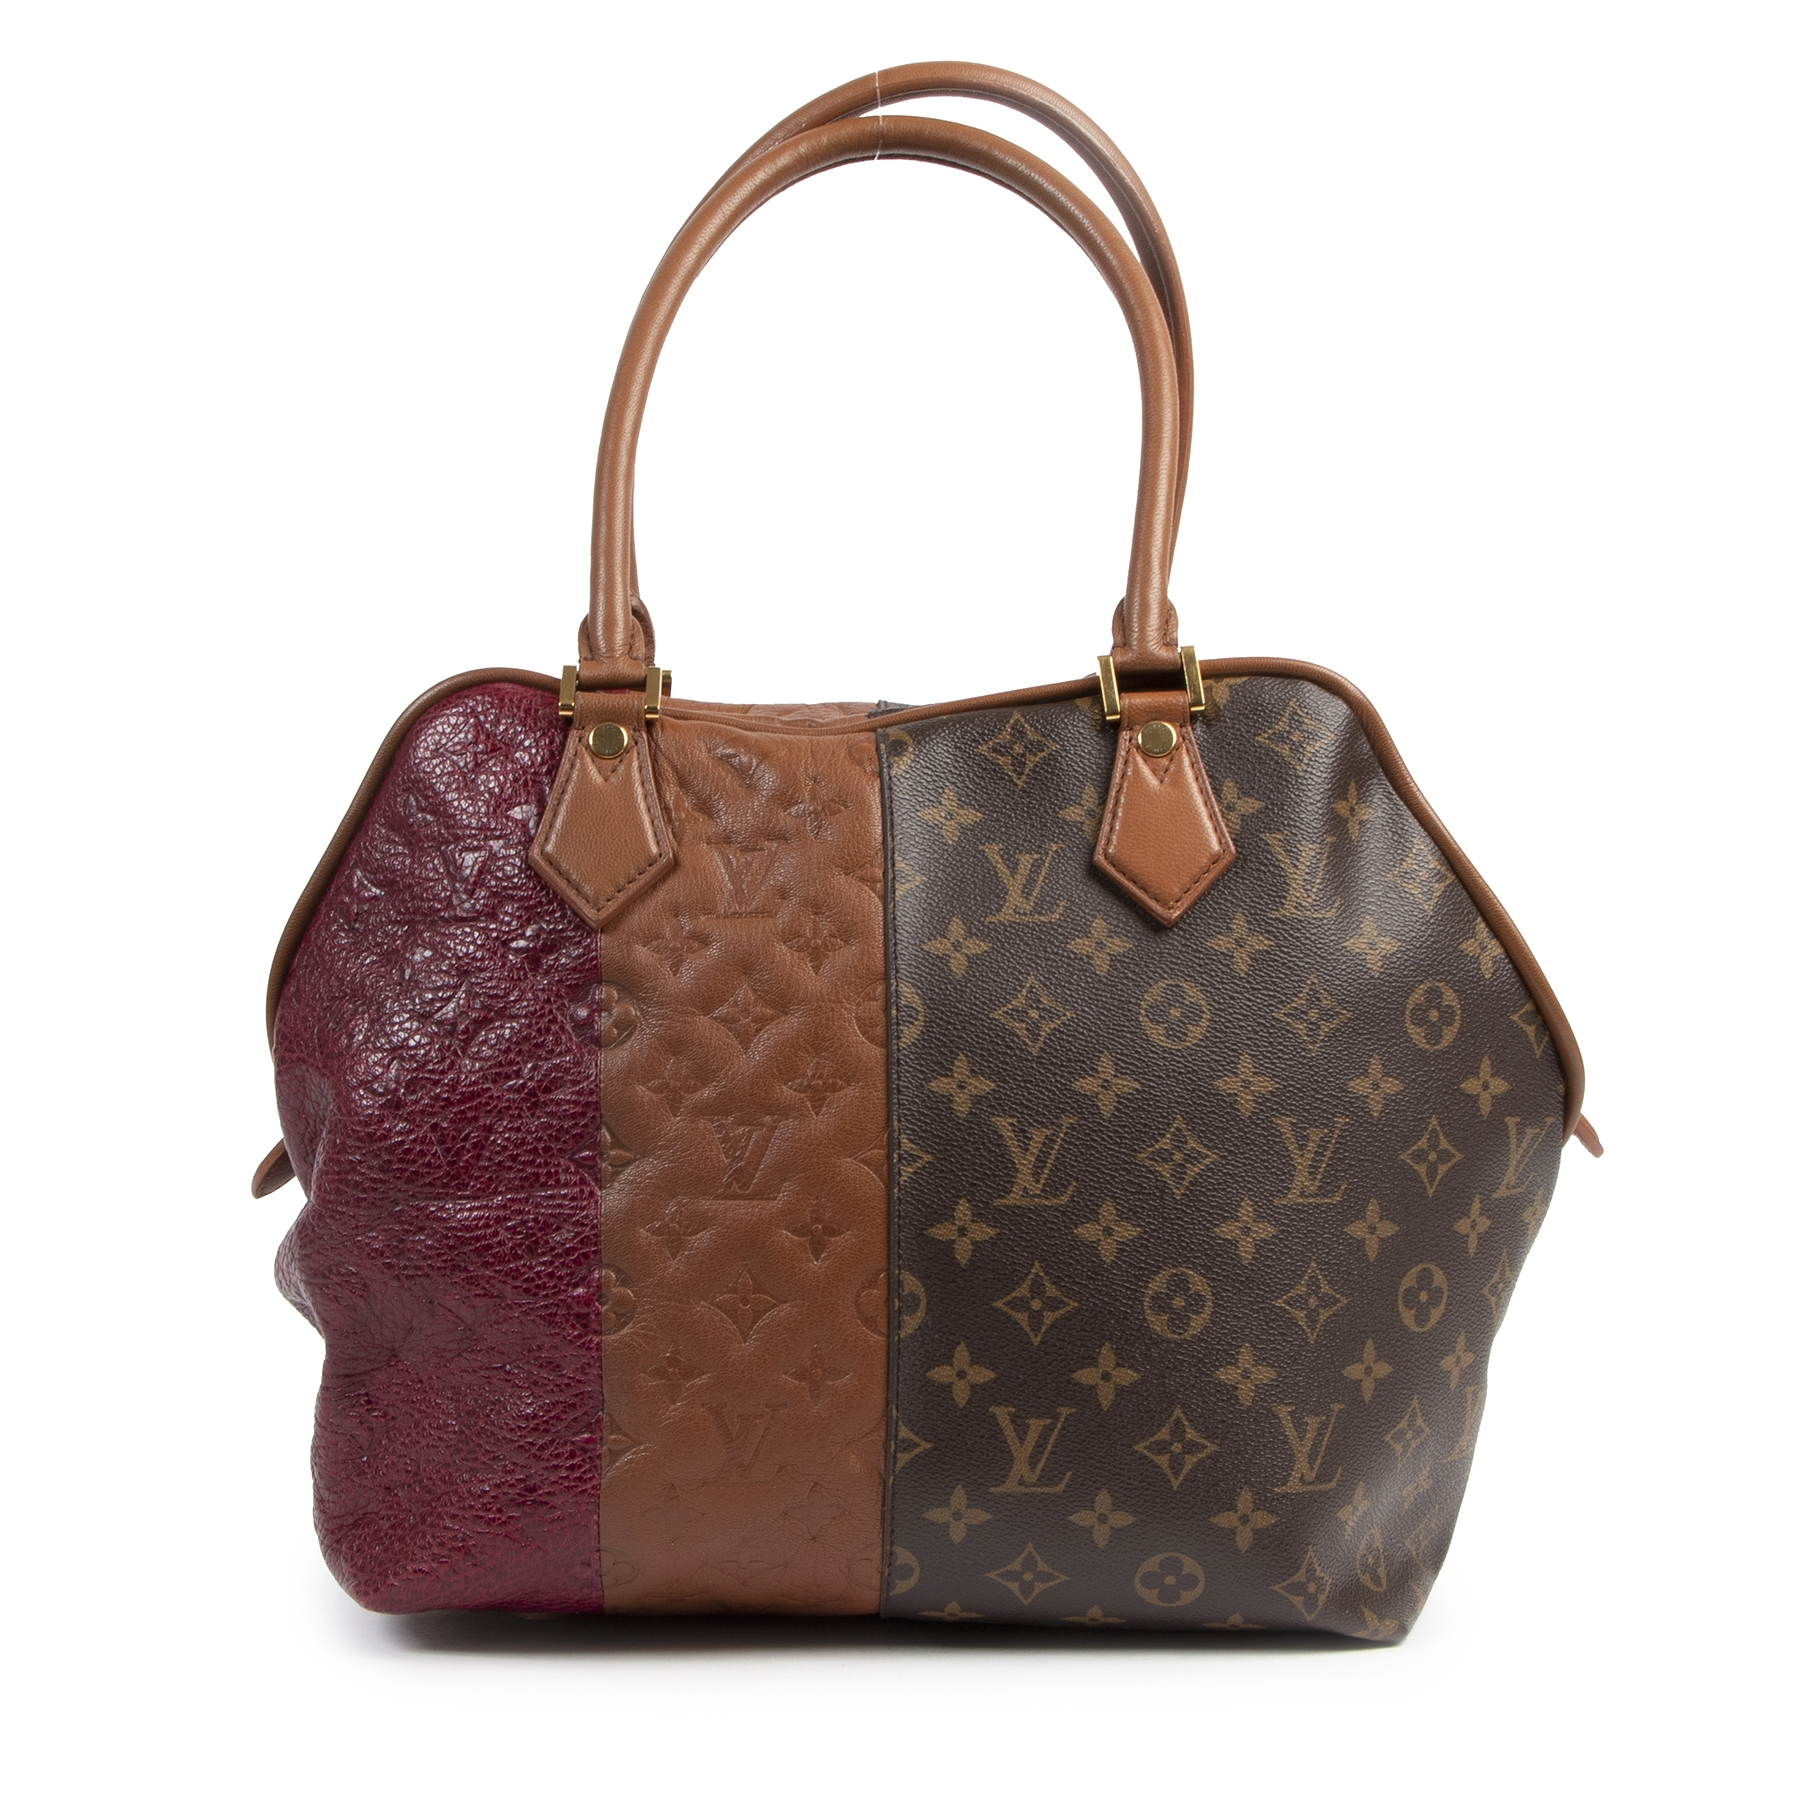 Louis Vuitton Burgundy Blocks Zipped Tote Bag